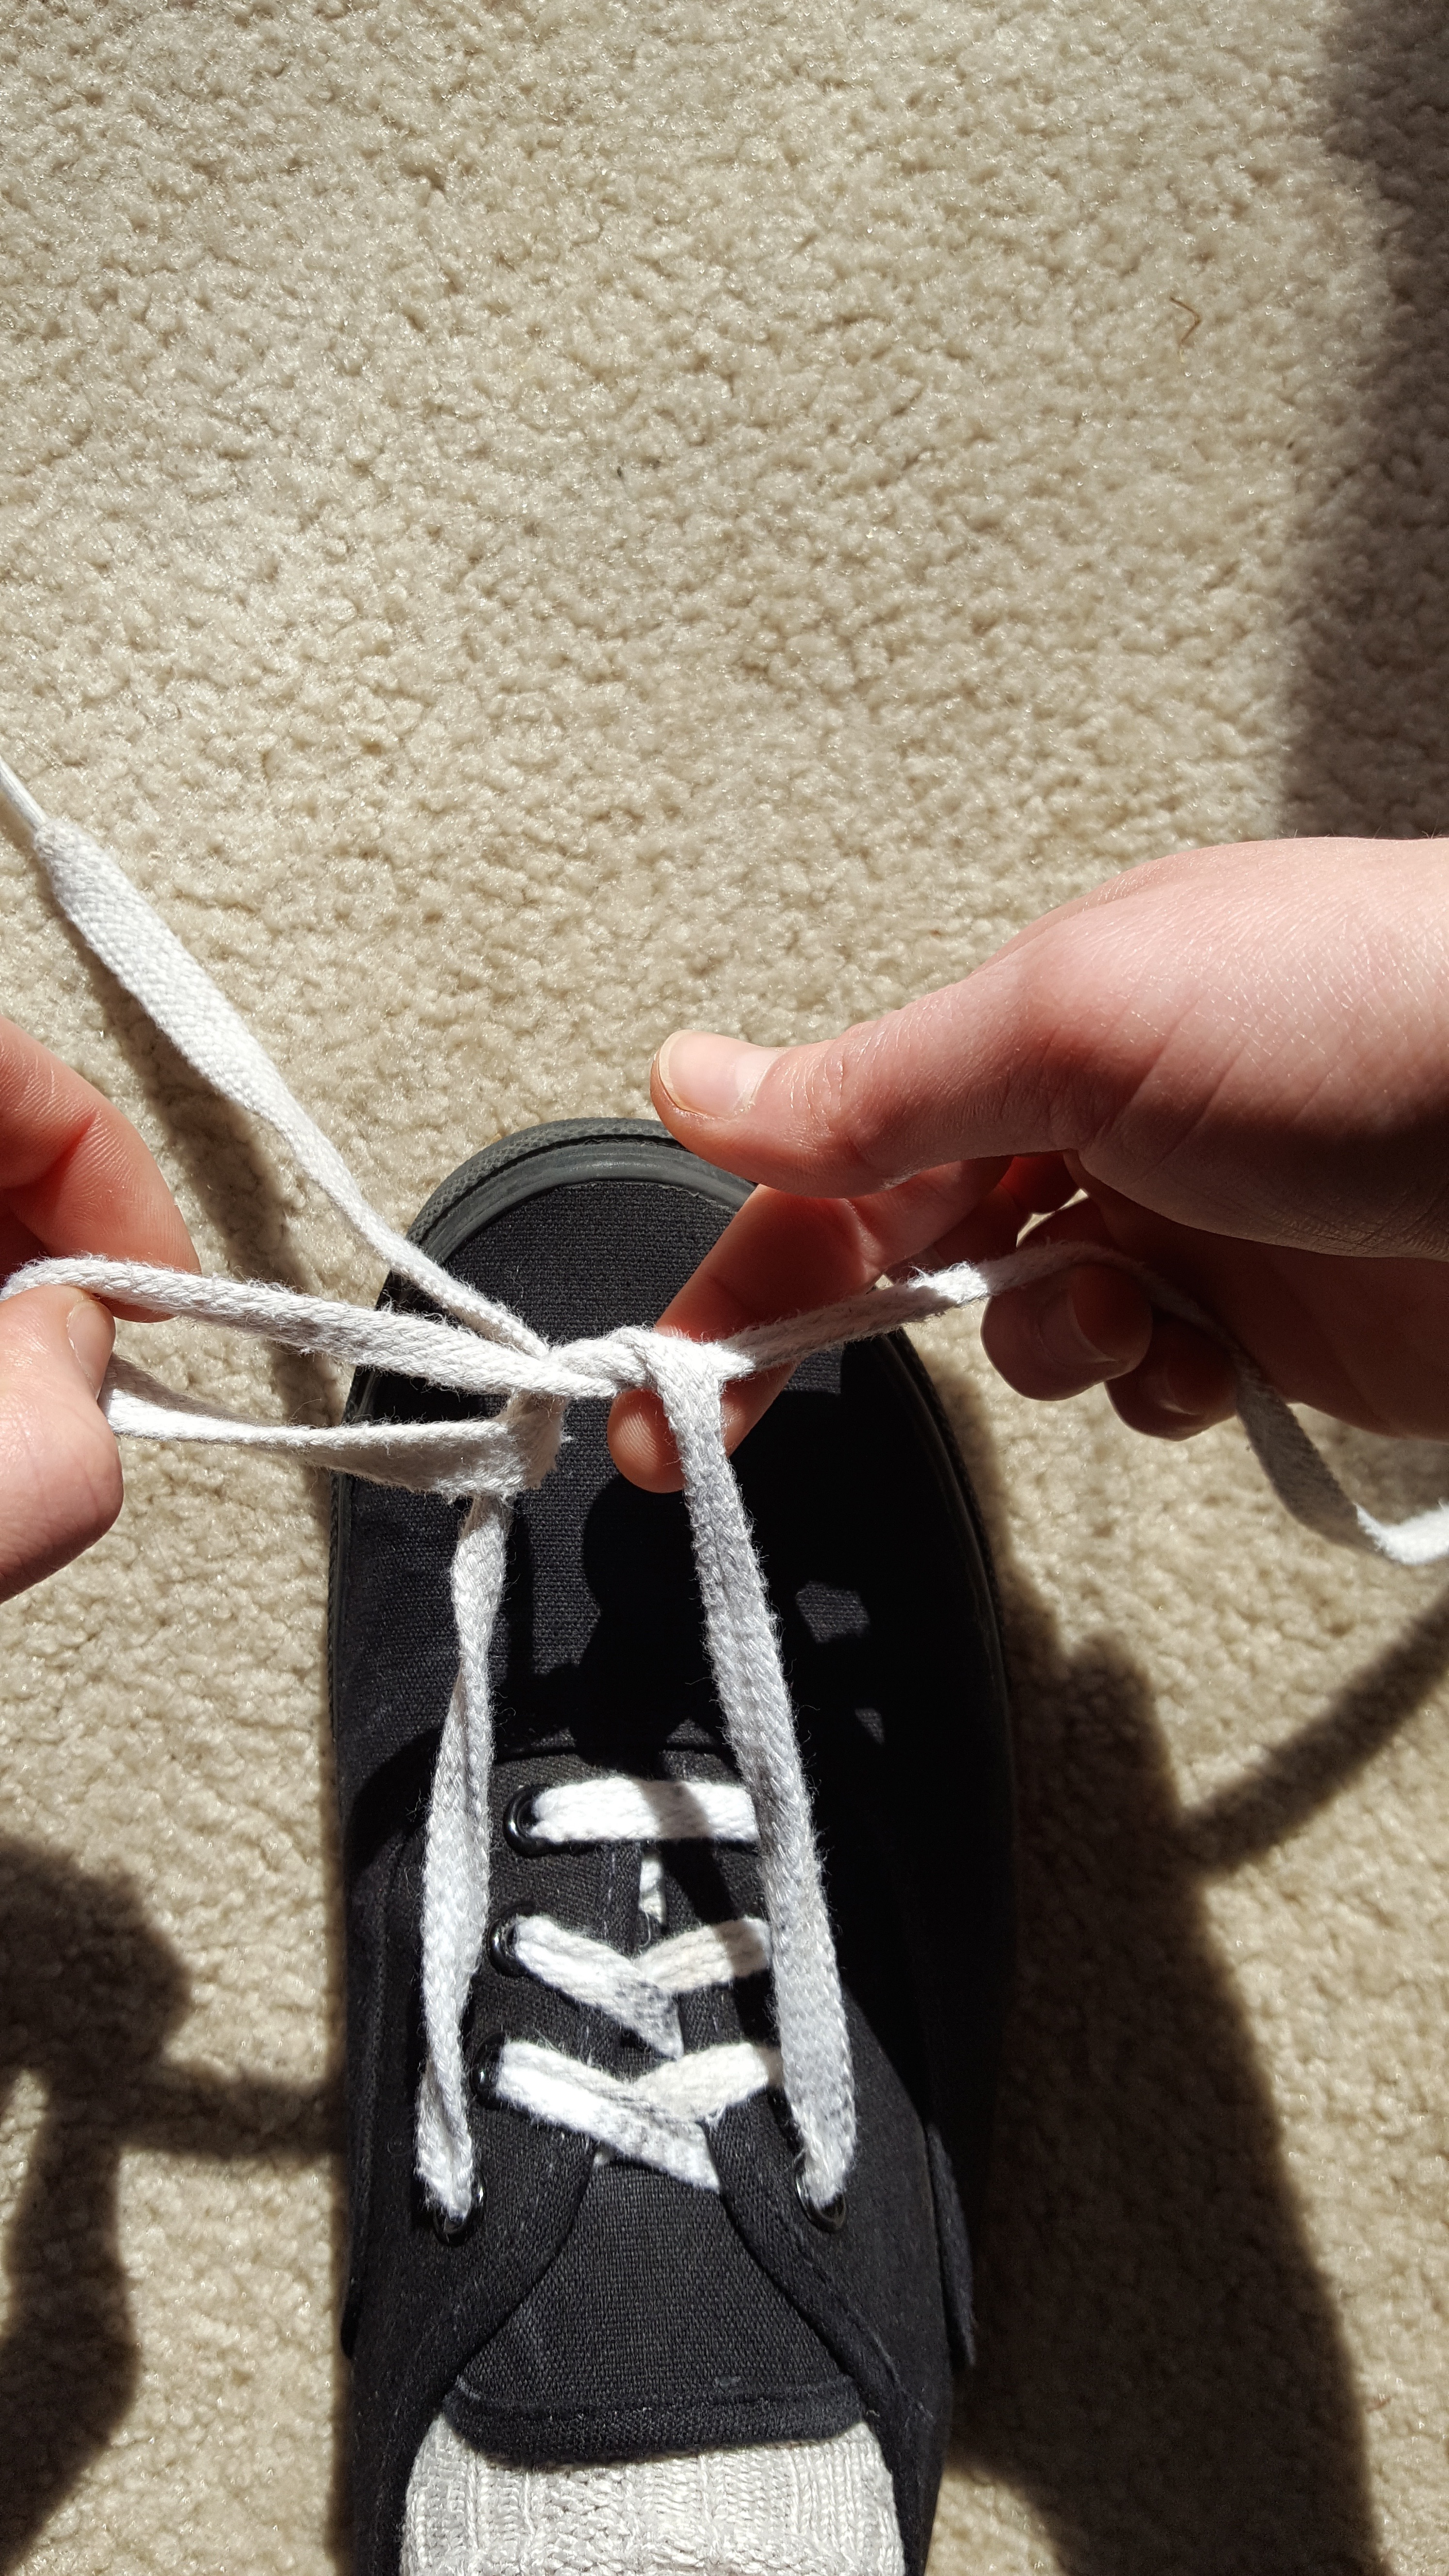 Picture of Continue Pulling the Right Lace All the Way Through (no Loops Yet!) While Holding on to the Left Lace.